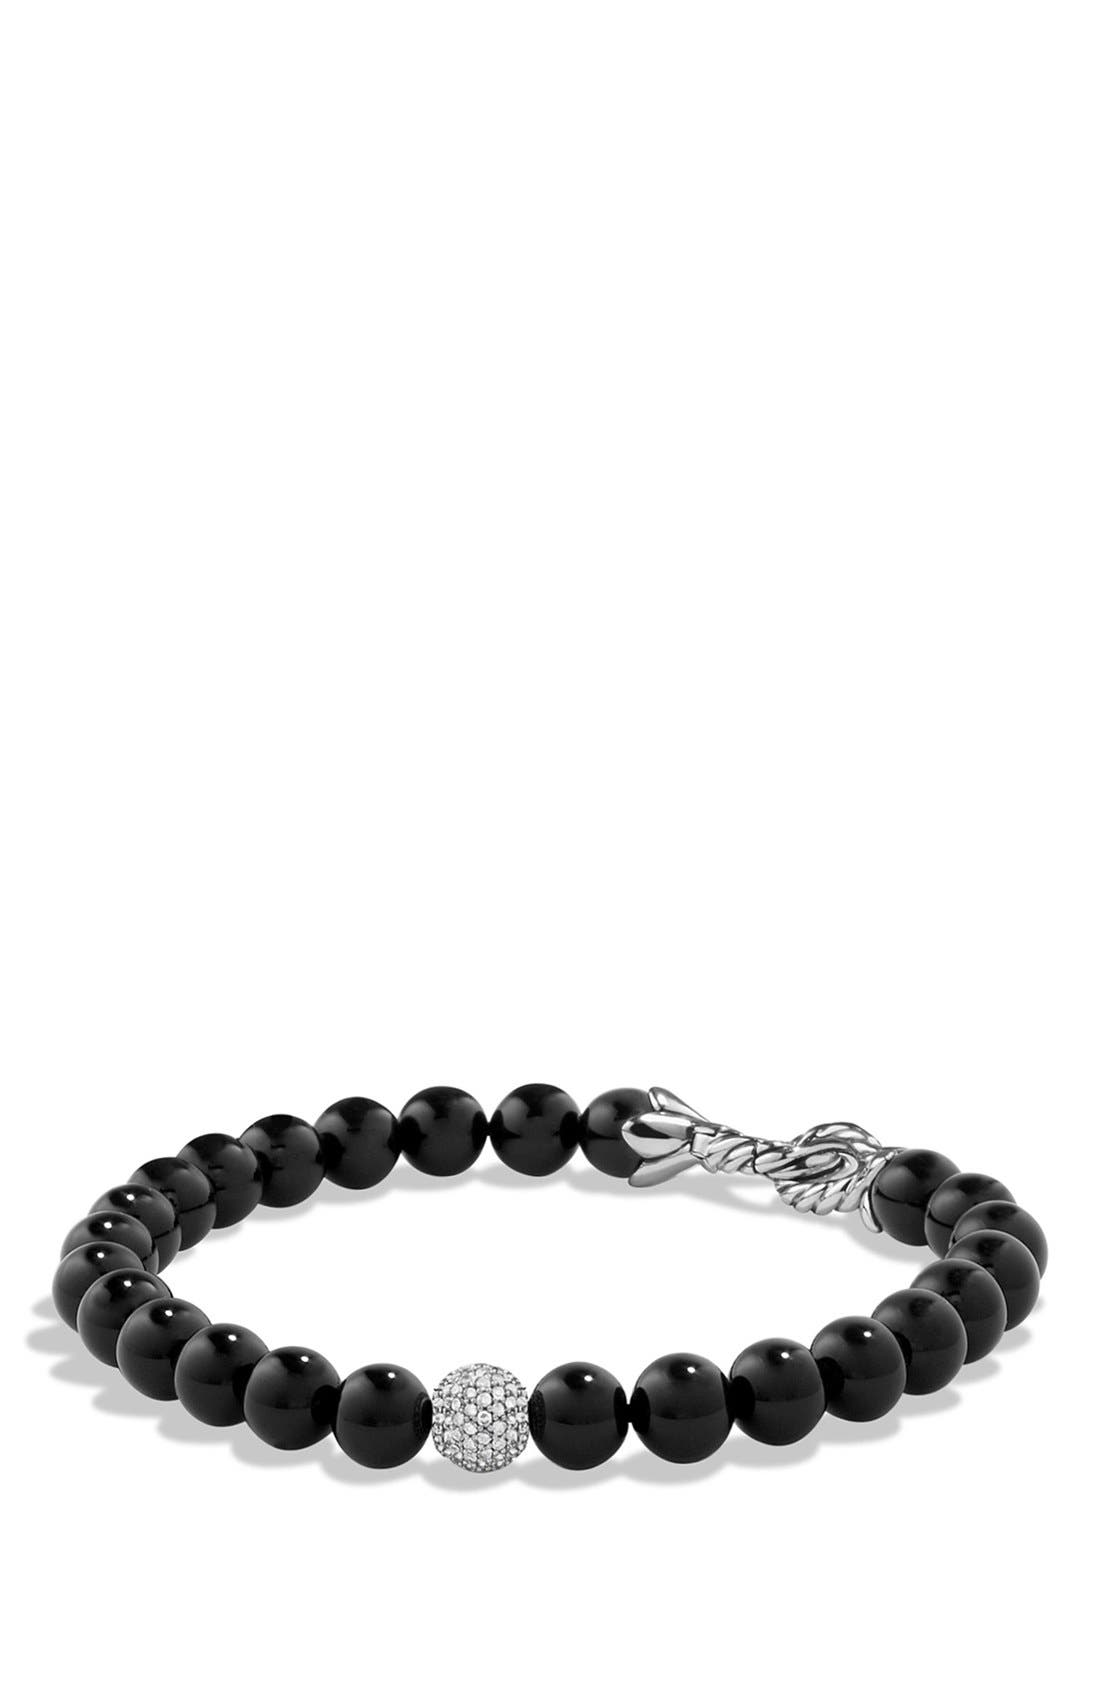 DAVID YURMAN Spiritual Beads Bracelet with Diamonds